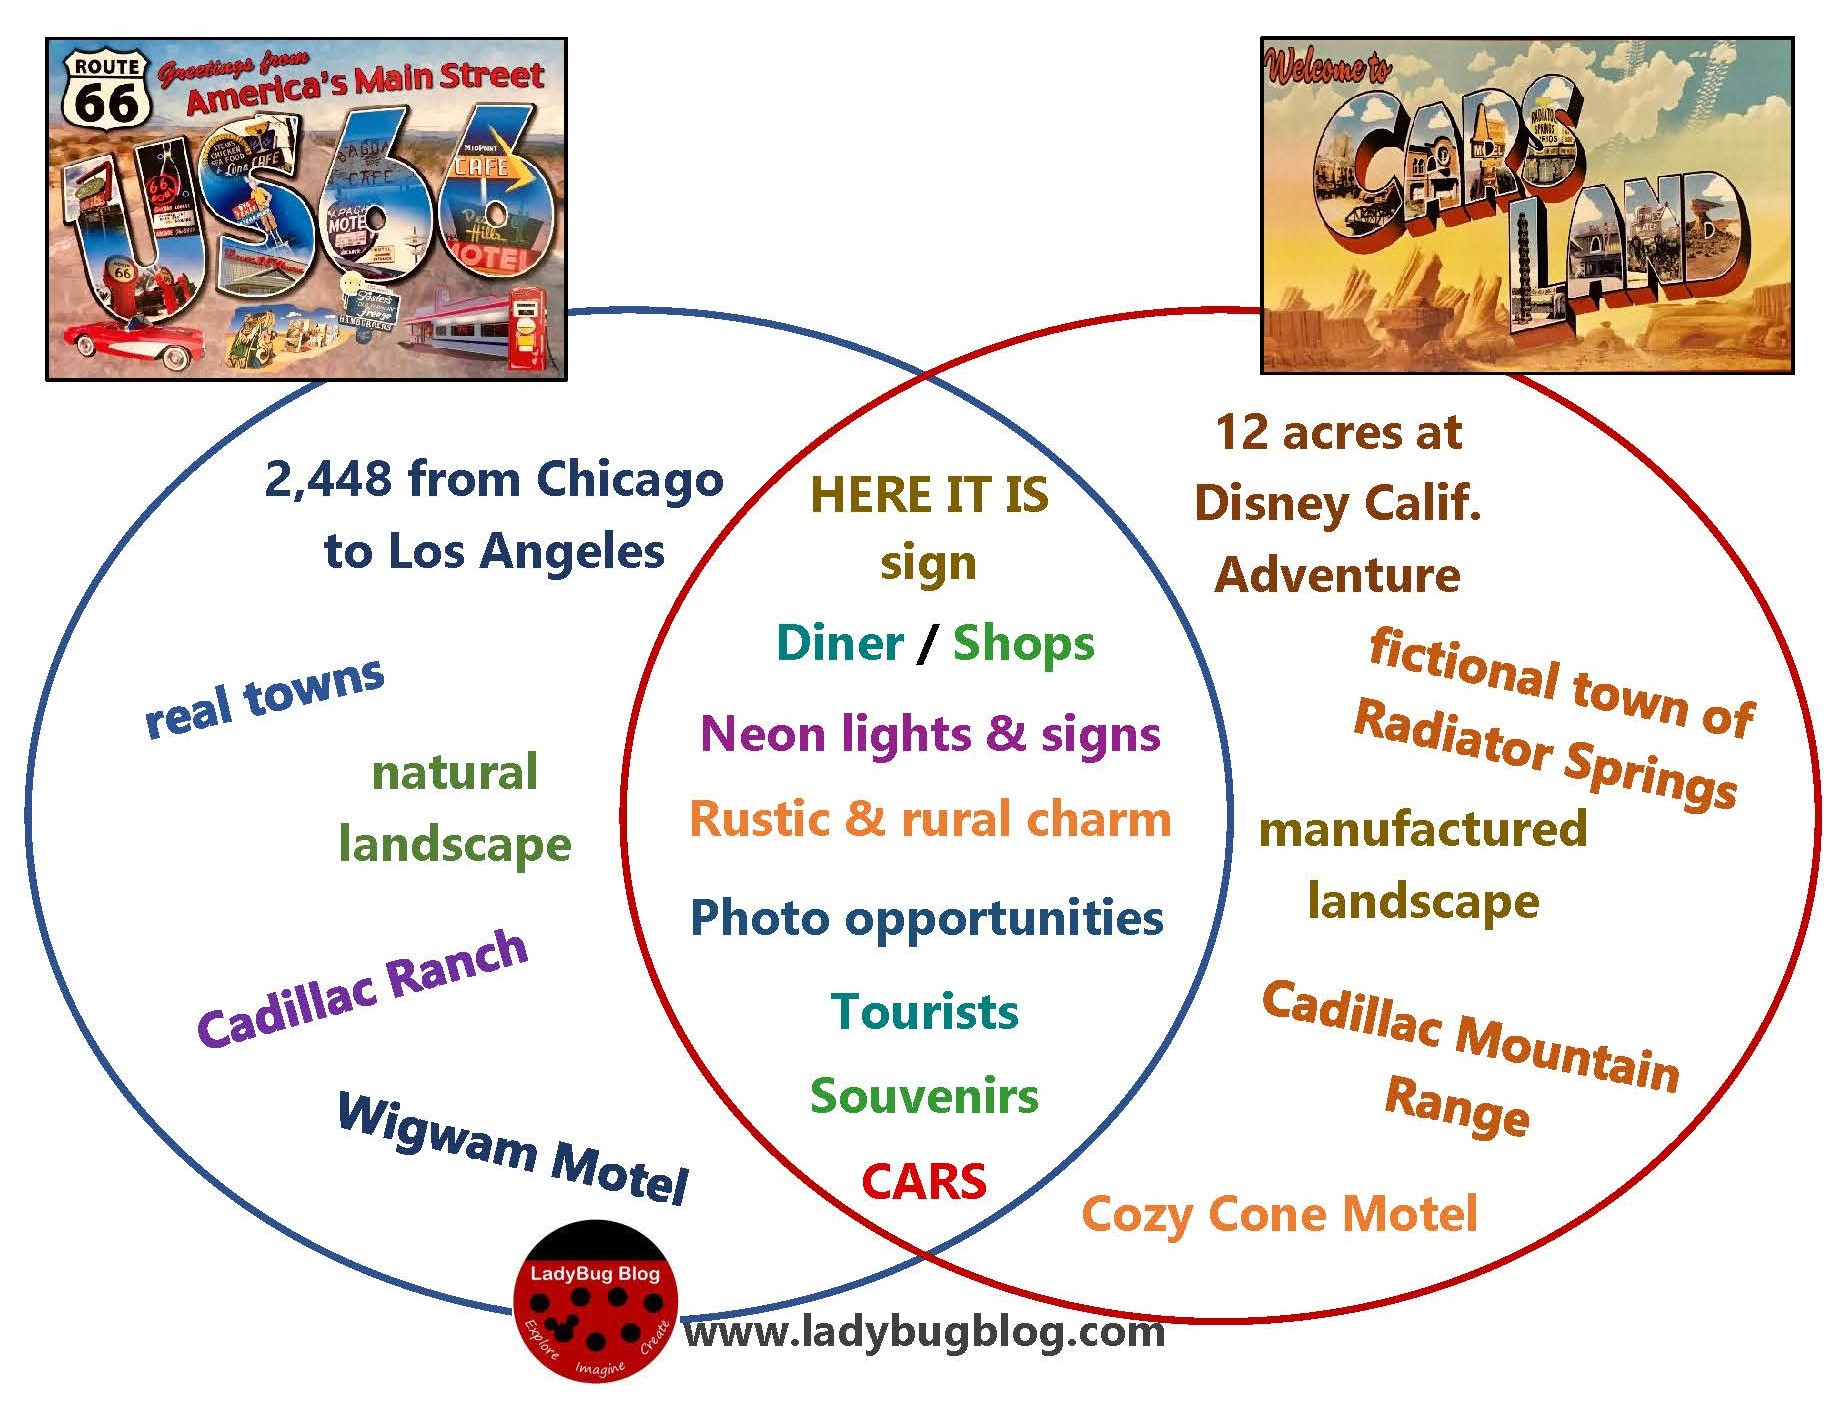 How does cars land compare to the real route 66 ladybug blog a classic venn diagram comparison created by krista ladybugblog postcards were purchased and scanned by krista ccuart Gallery